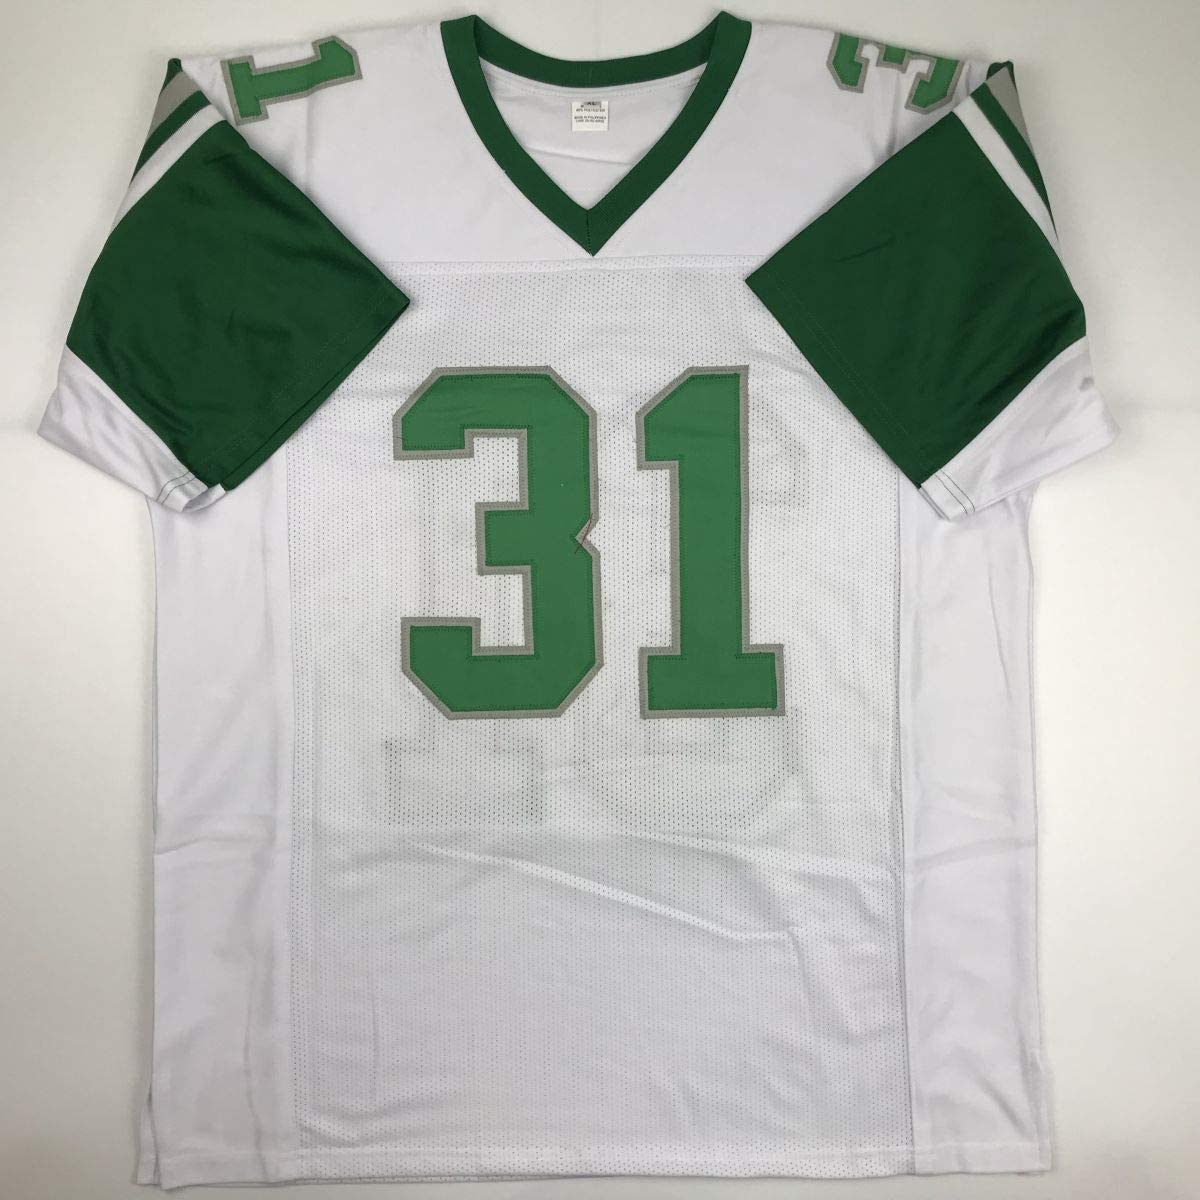 Autographed//Signed Wilbert Montgomery Inscribed Philadelphia White Football Jersey PSA//DNA COA